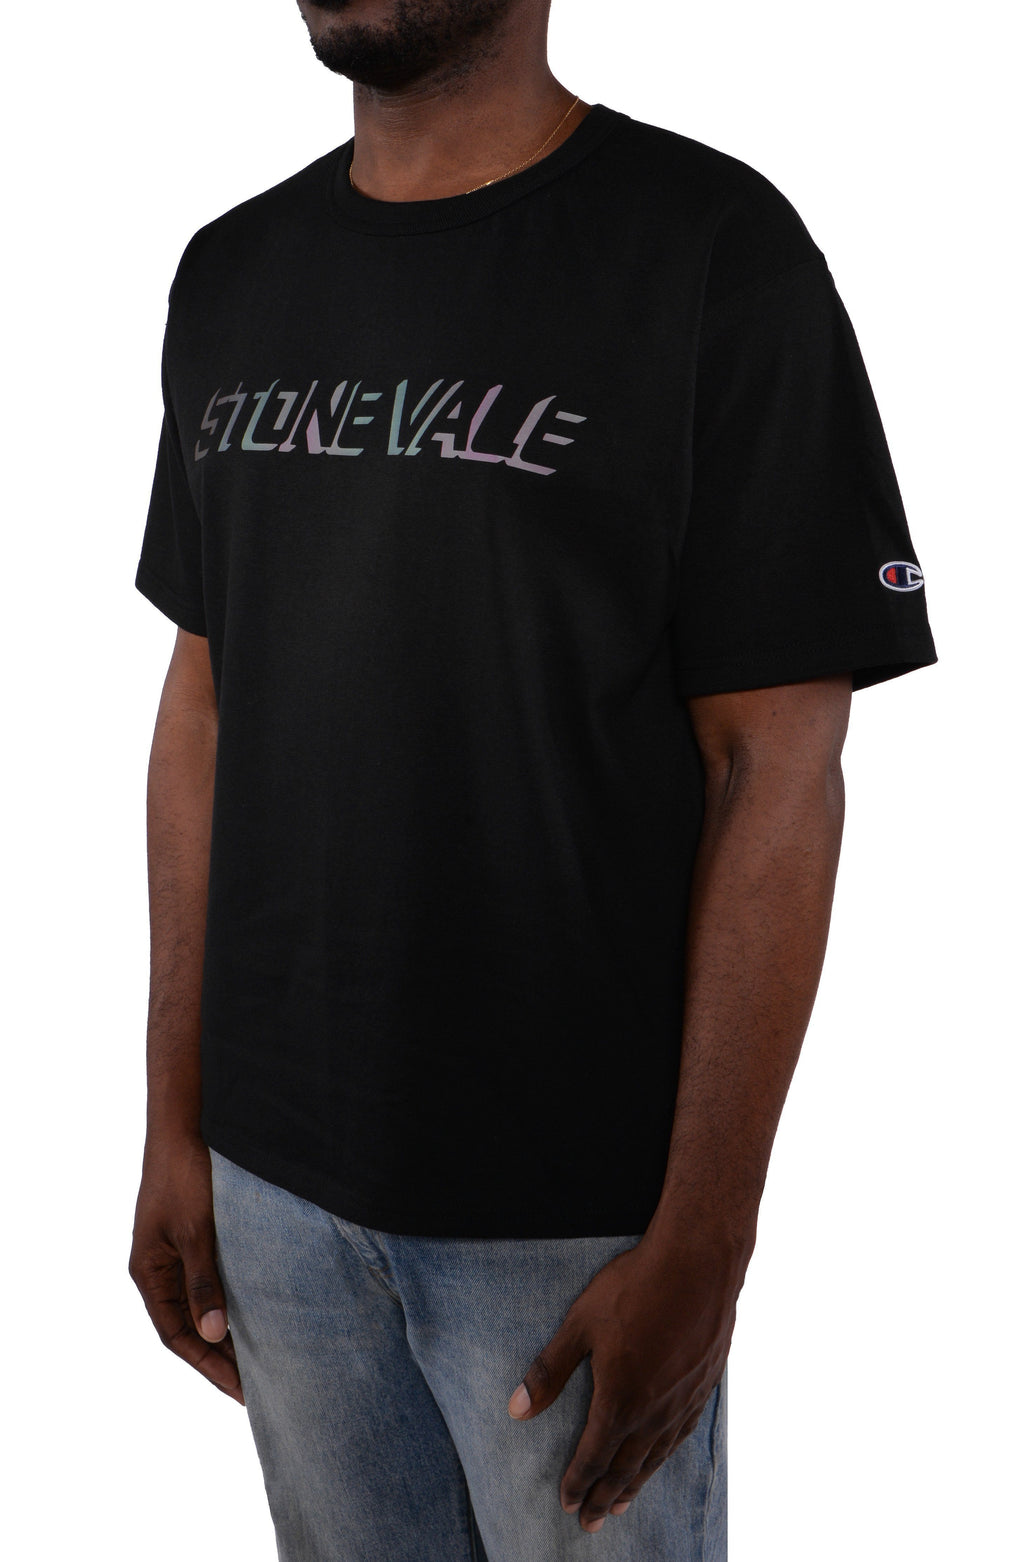 StoneVale Blocked Out Reflective Hologram Champion Heritage Crew